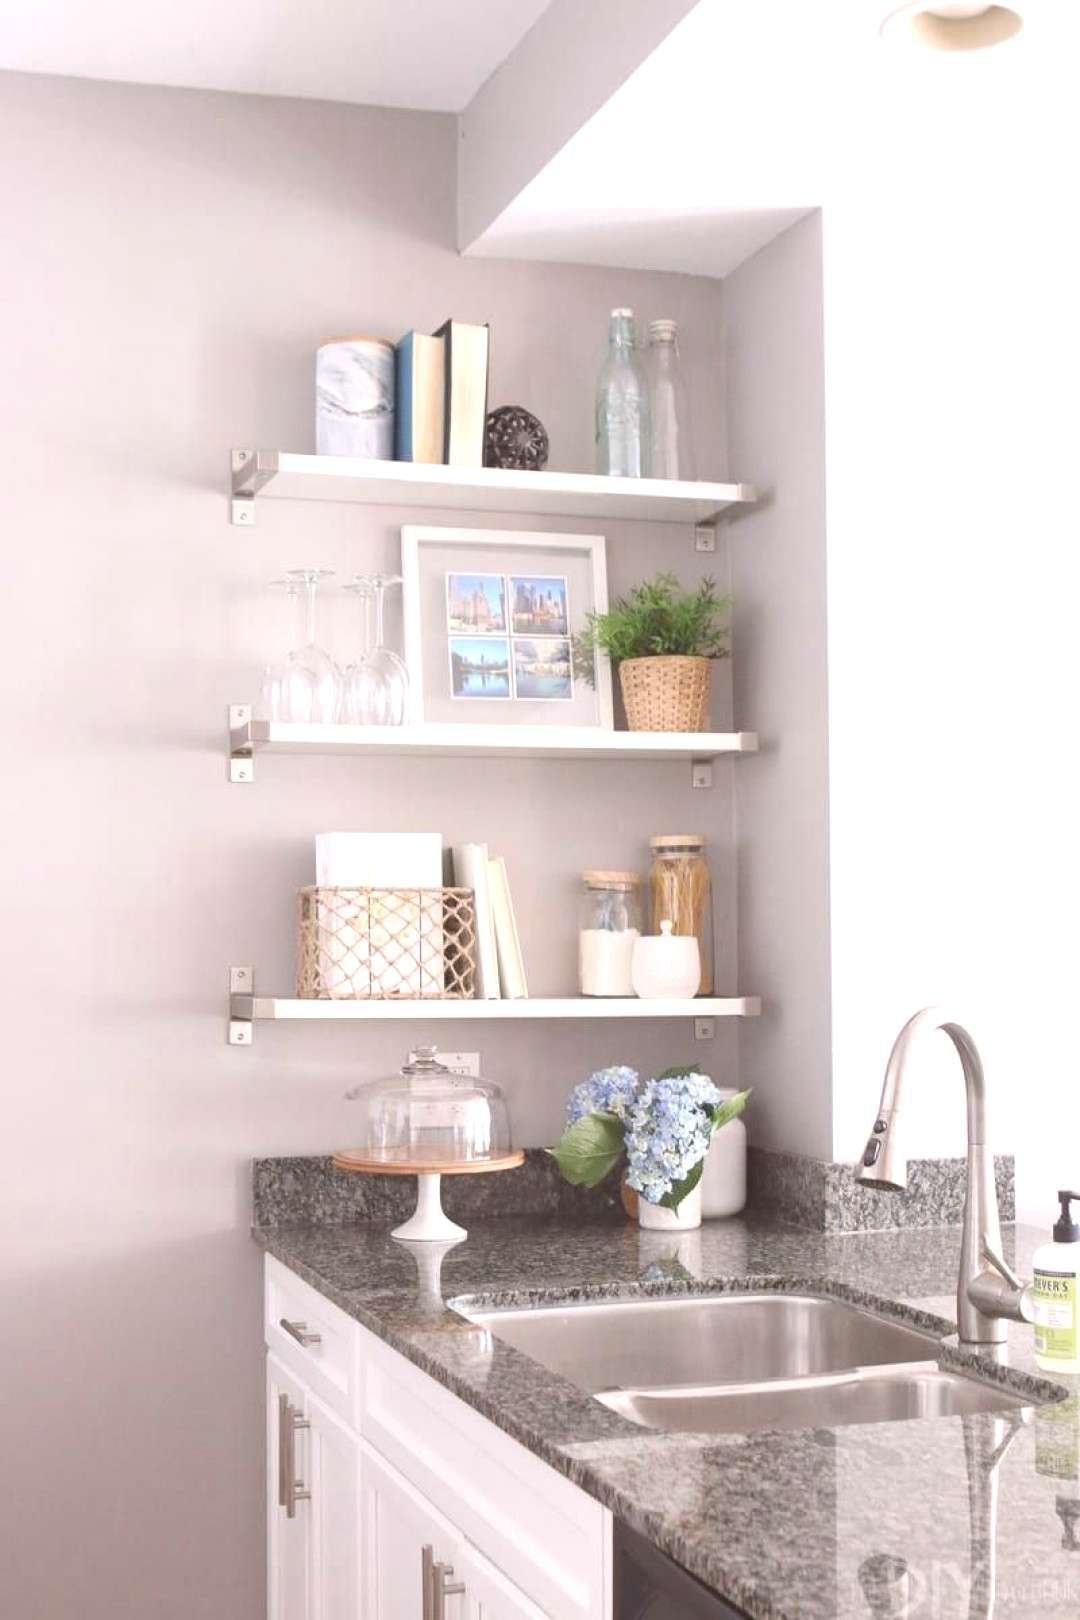 Built in shelving is a great storage option for small condos.